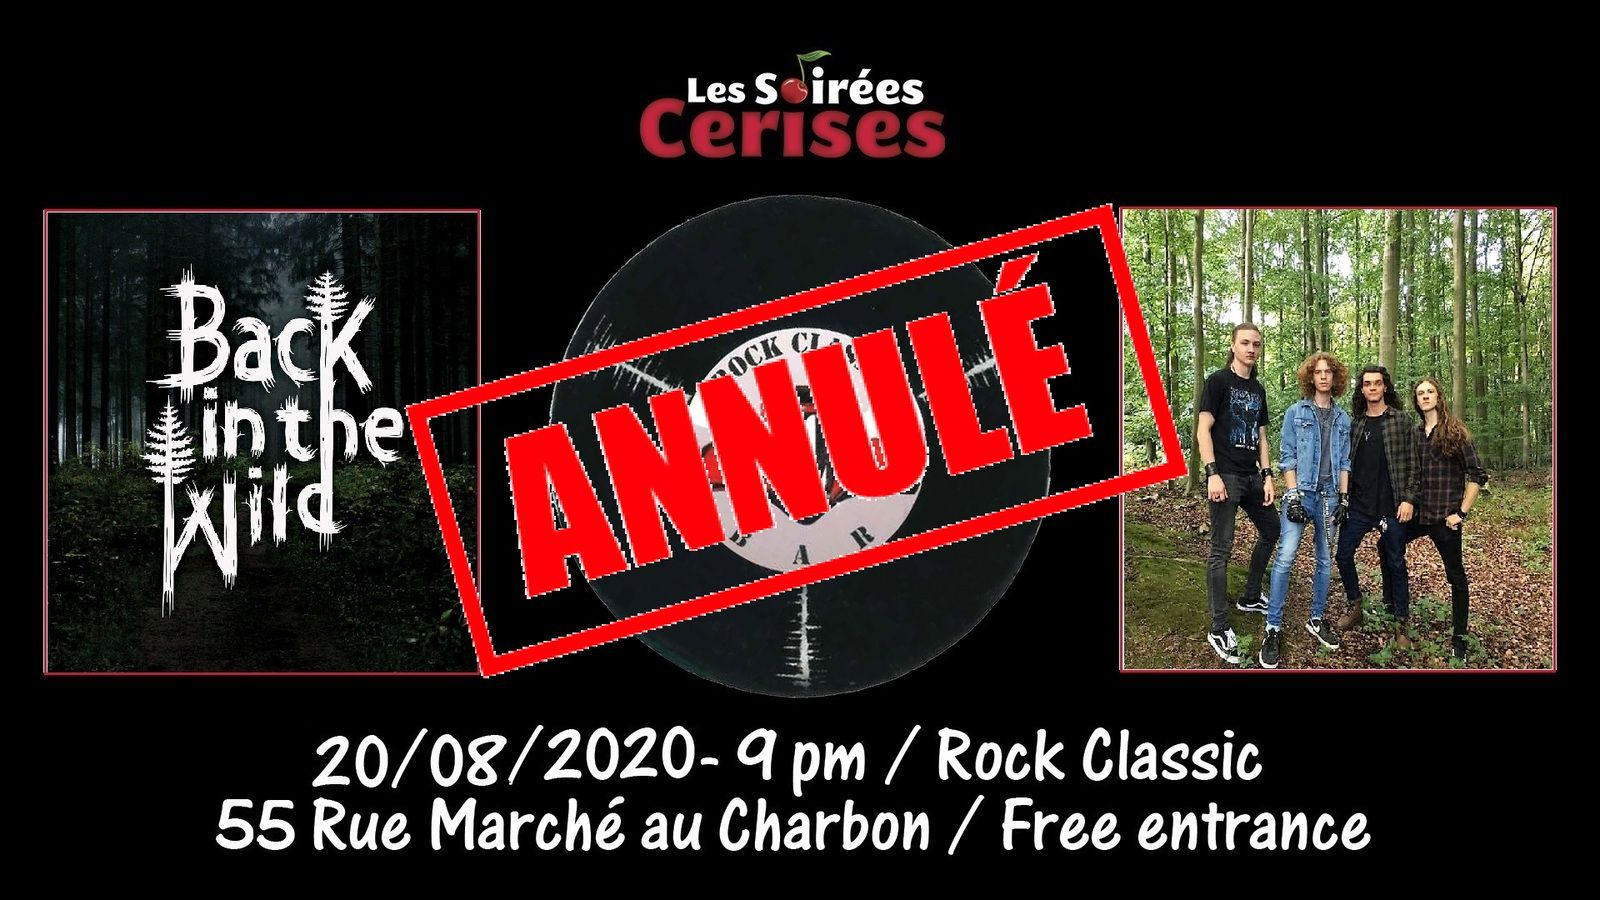 ▶ Back in the wild @ Rock Classic - 20/08/2020 - annulé !